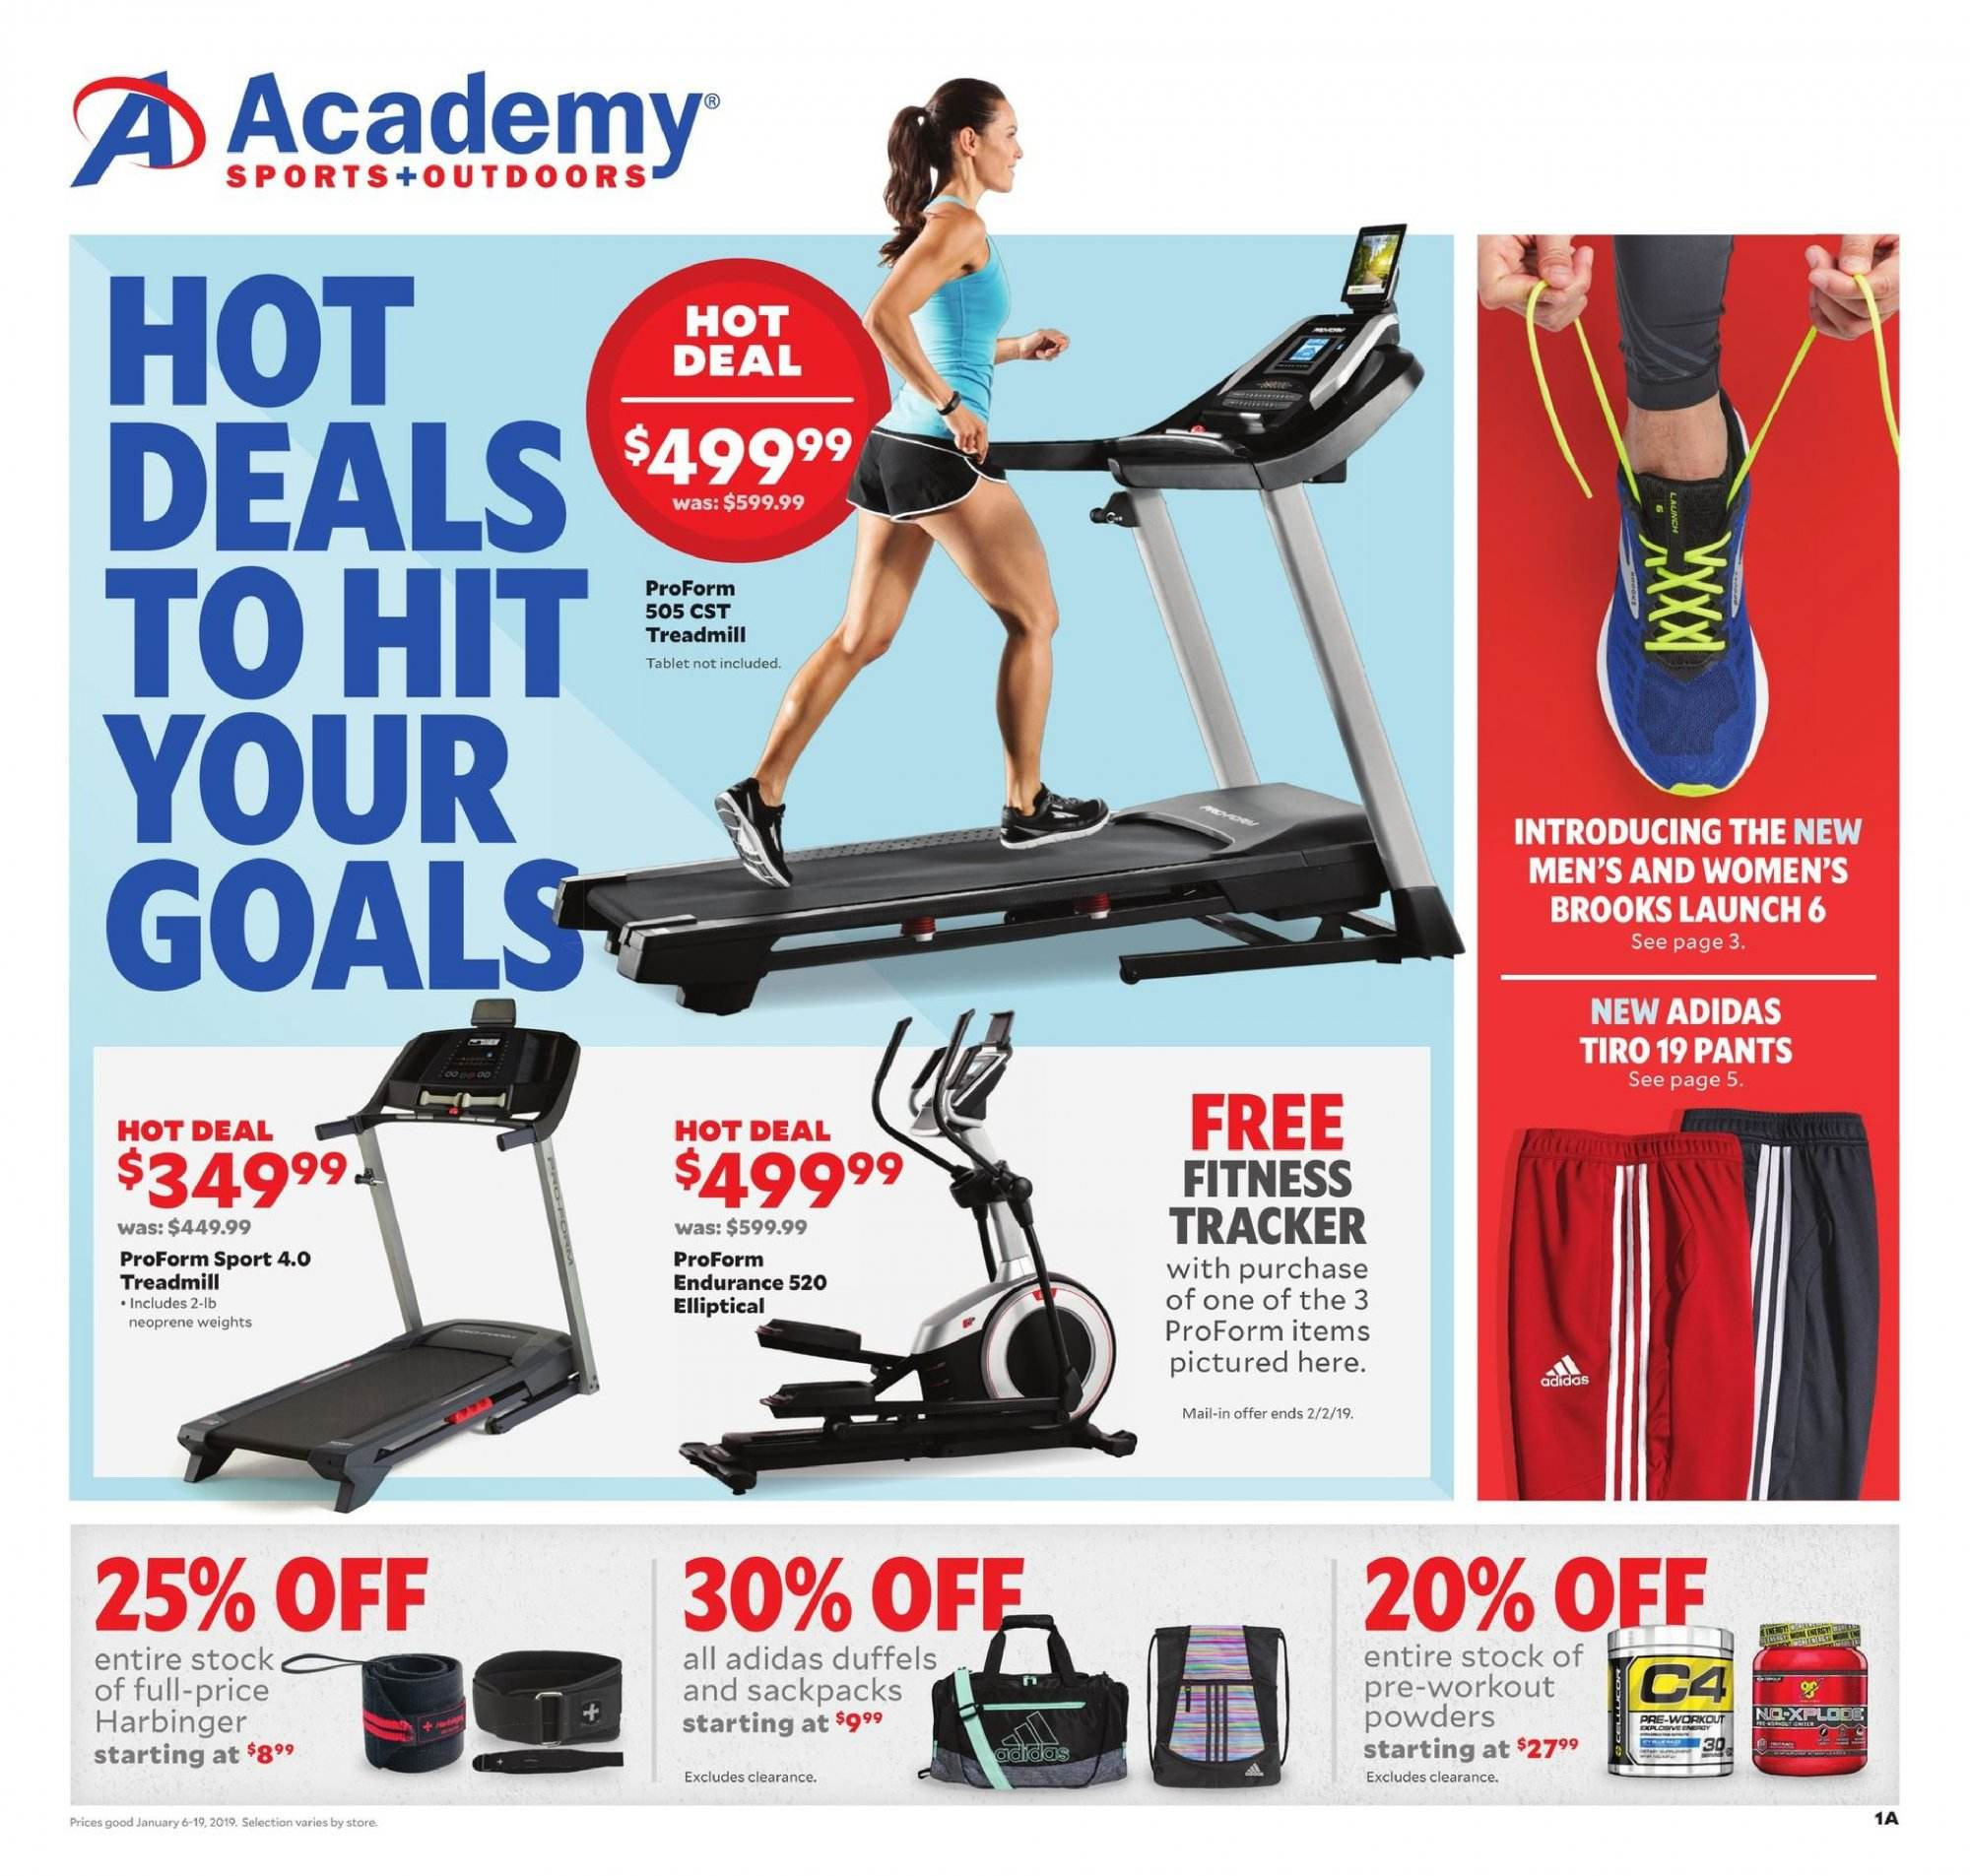 Academy Sports Flyer - 01.06.2019 - 01.19.2019 - Sales products - adidas, brooks, tablet, proform, pants, neoprene. Page 1.